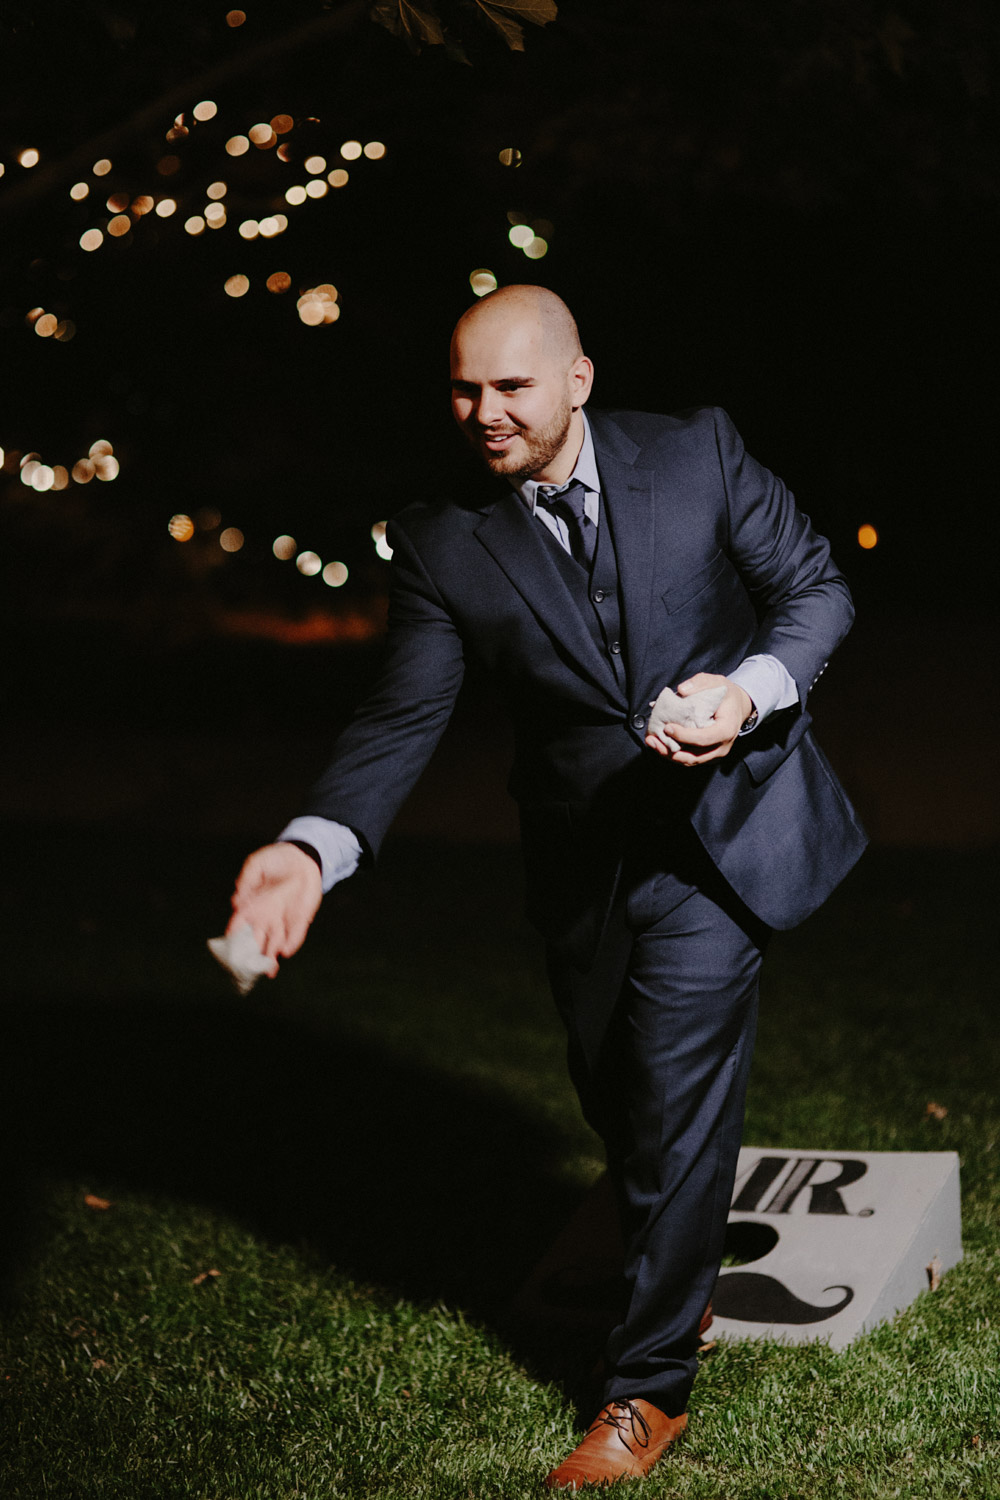 Greg-Petersen-San-Francisco-Wedding-Photographer-1-104.jpg